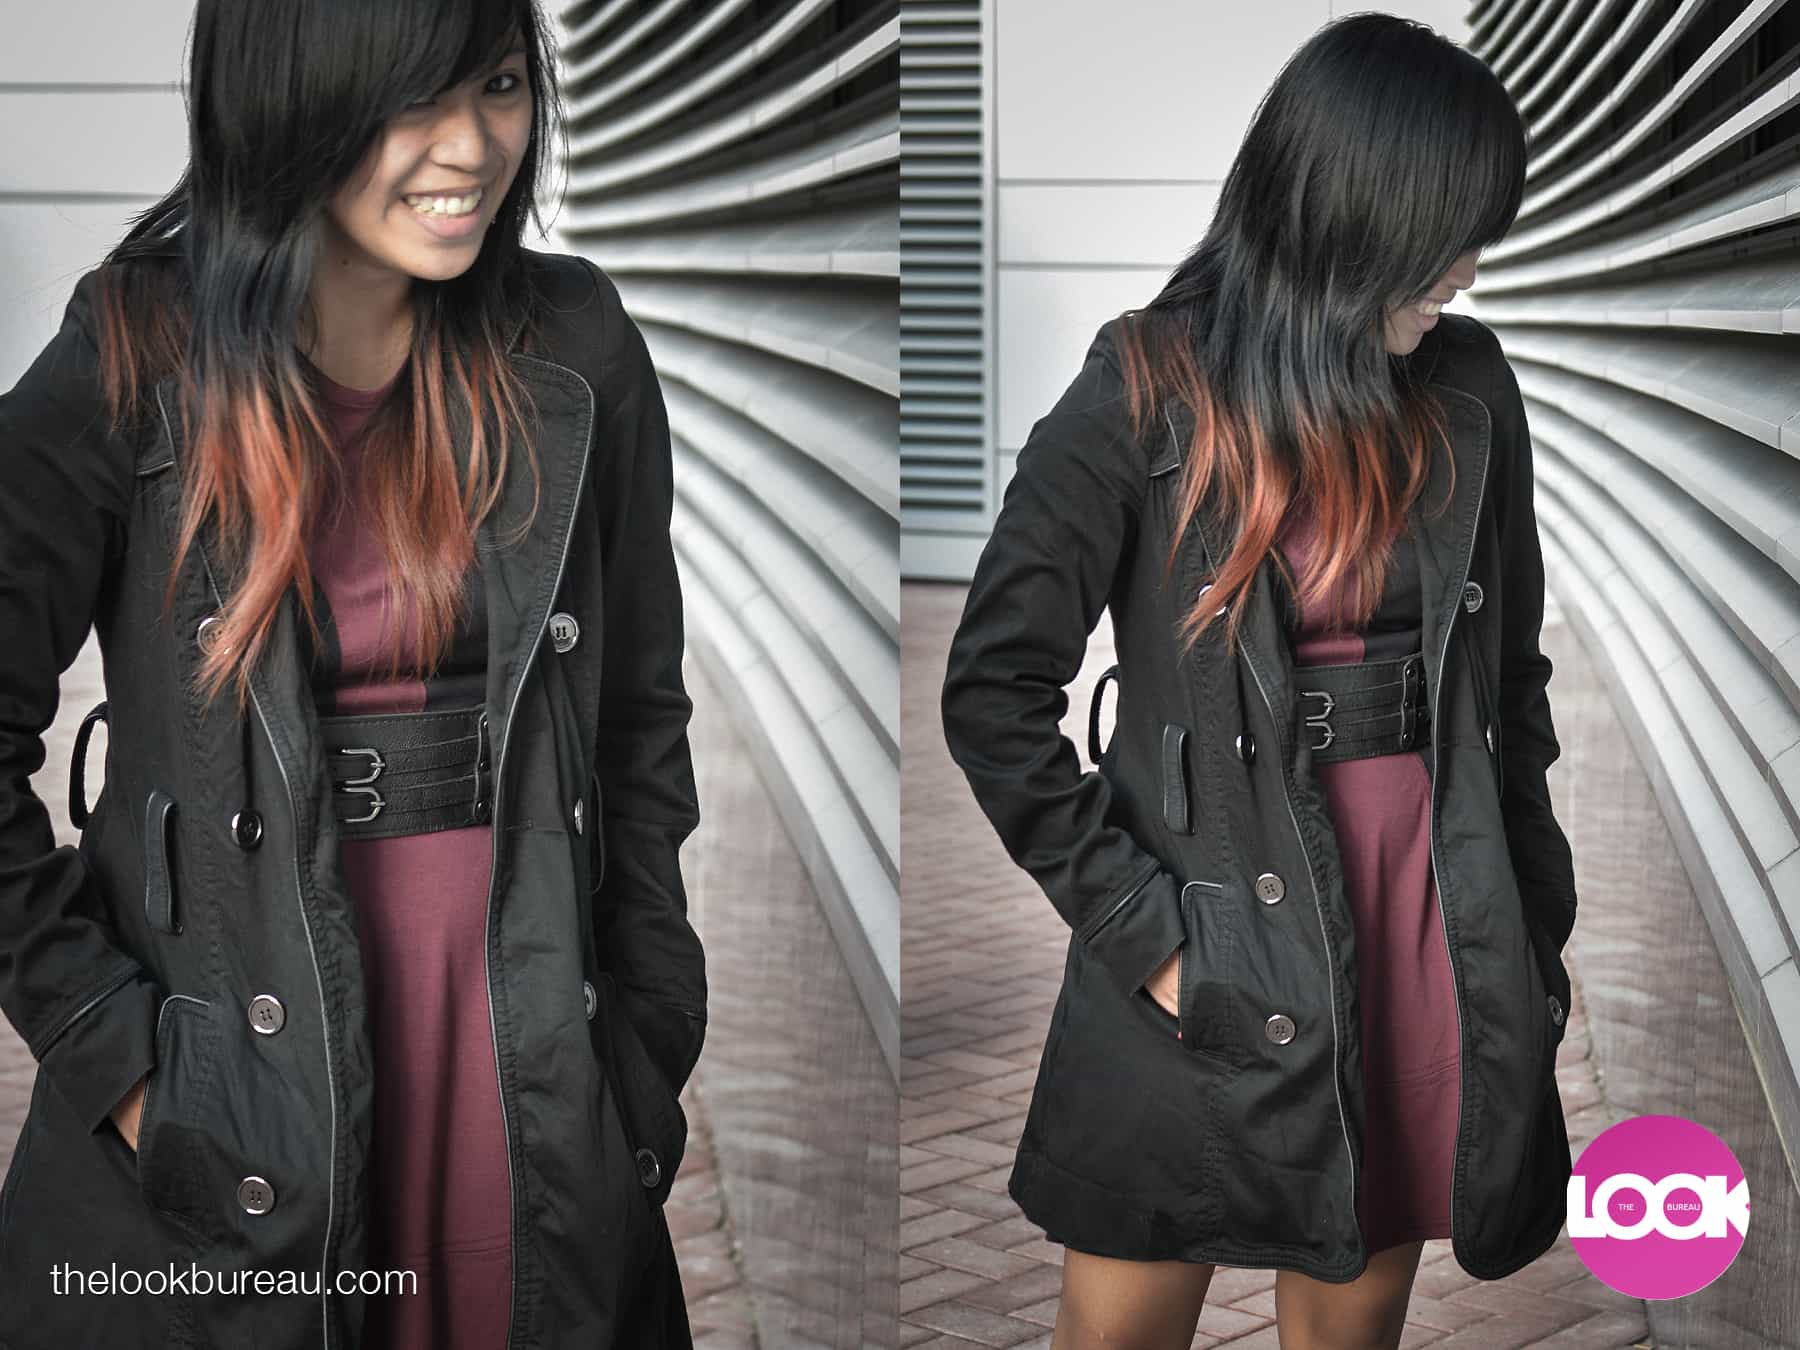 The Black Trench And Oxblood